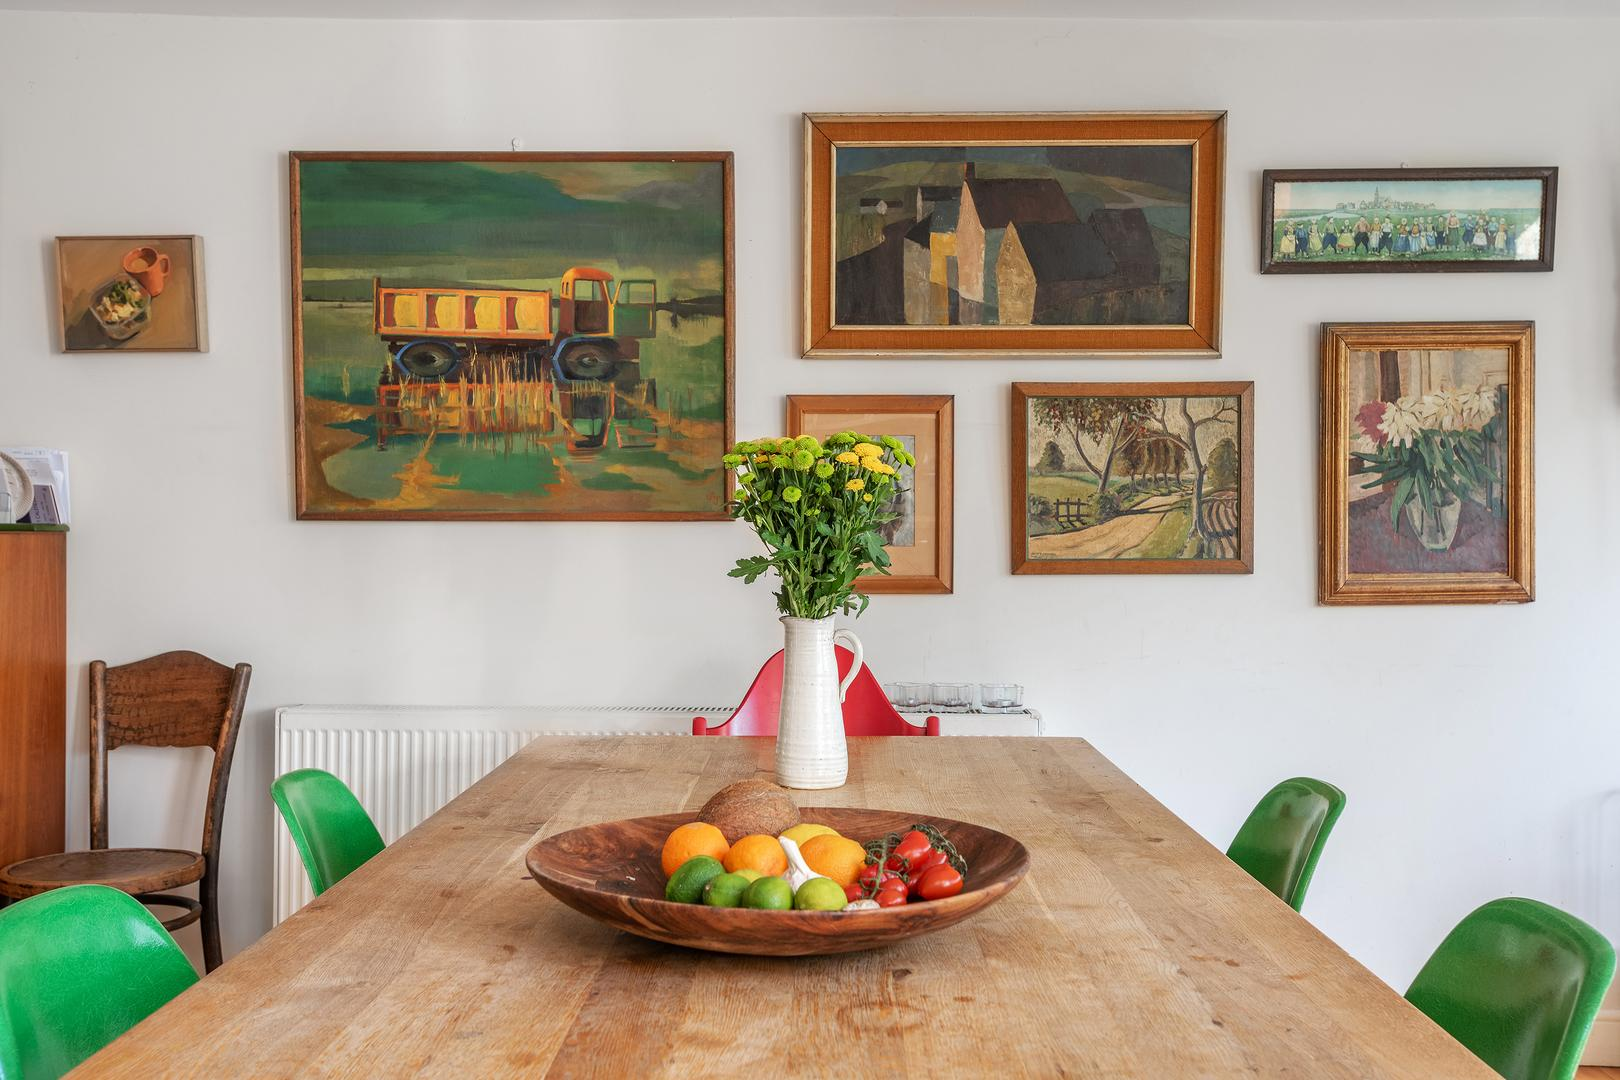 Property Image 1 - Artistic Residence by Clissold Park in Stoke Newington